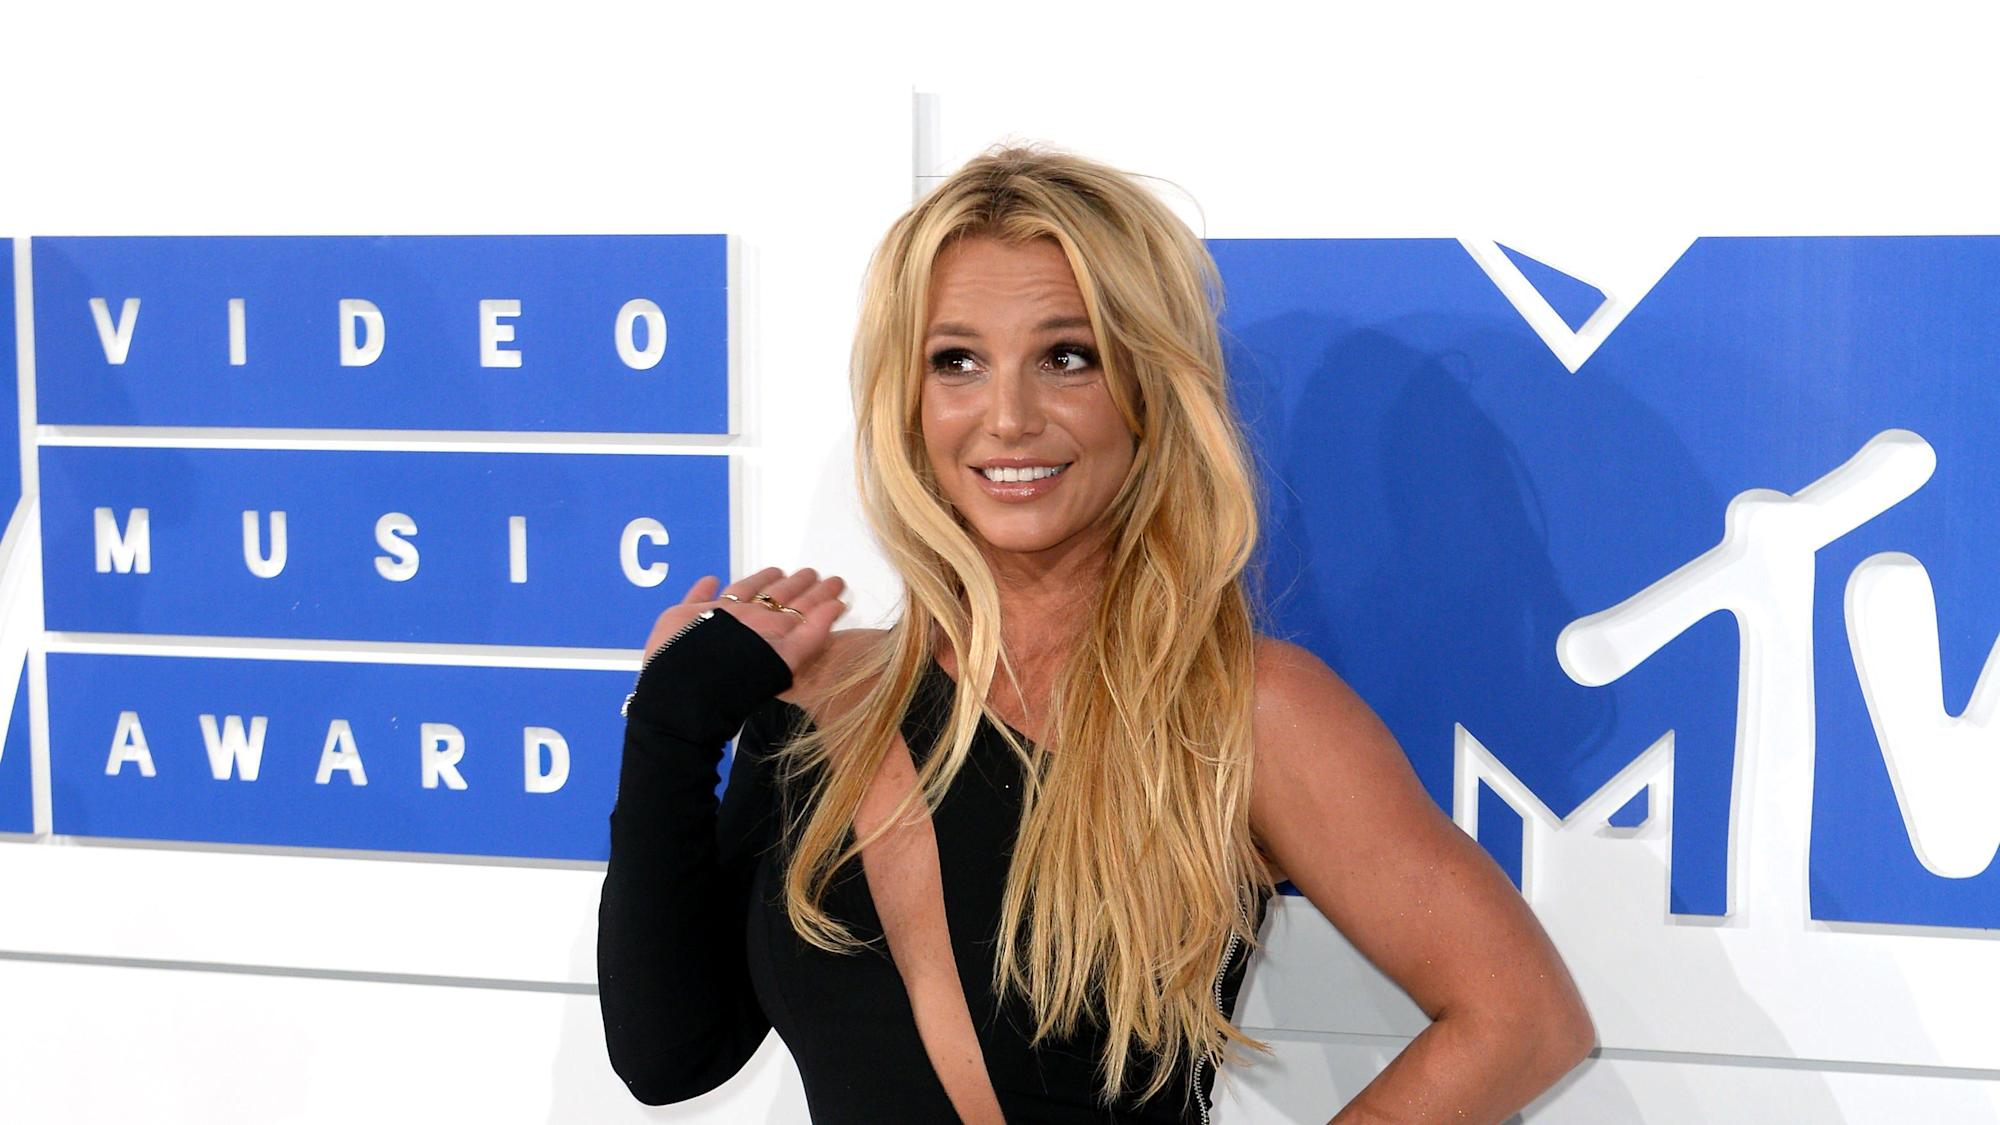 Britney Spears documentary to explore her conservatorship battle